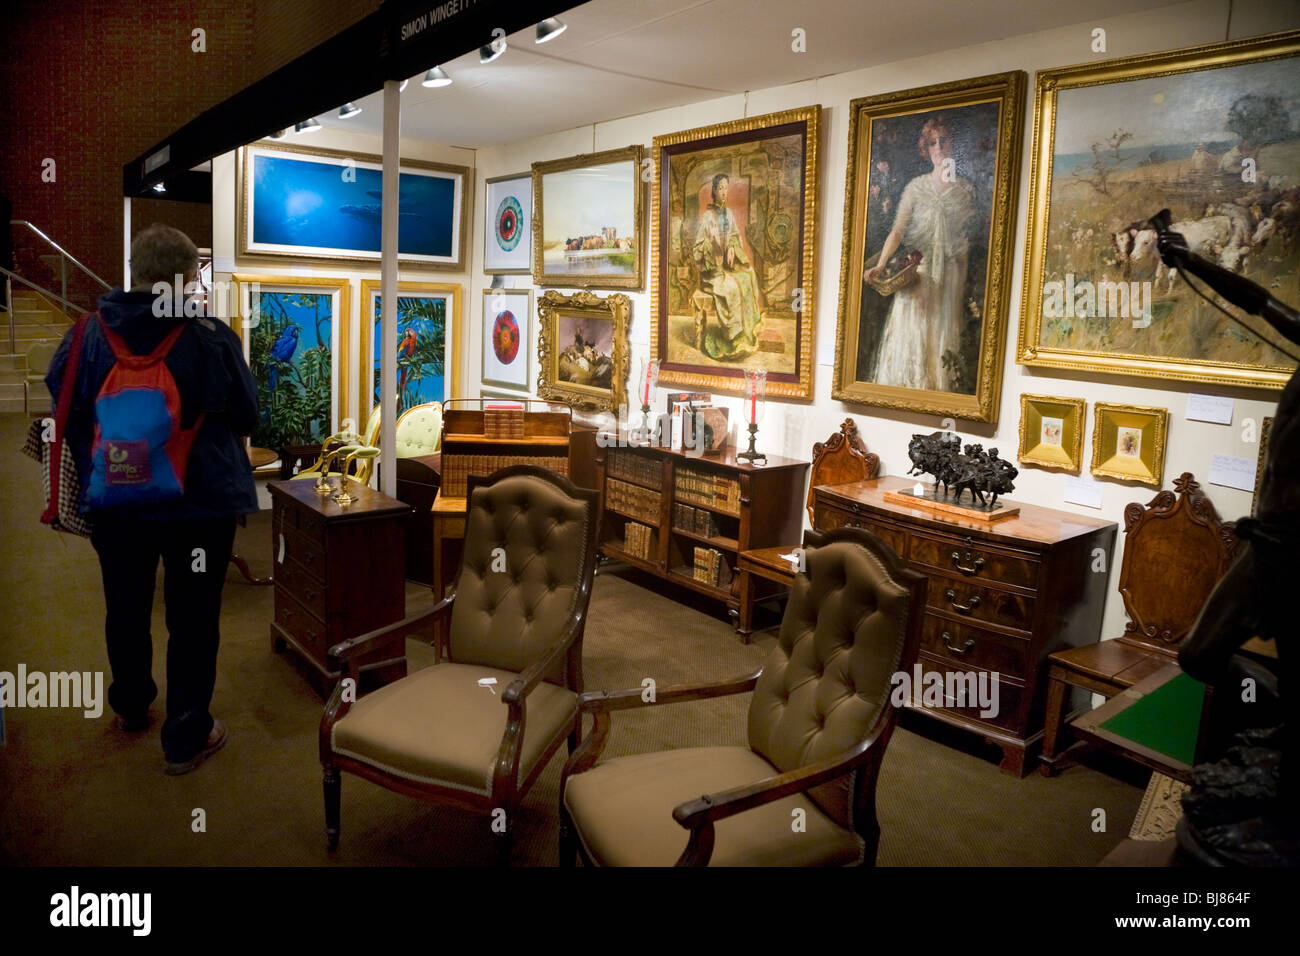 Exhibitor / stall selling antique furniture, and paintings, at the Antiques  & Fine Arts Fair, Kensington Town Hall. London. UK. - Exhibitor / Stall Selling Antique Furniture, And Paintings, At The